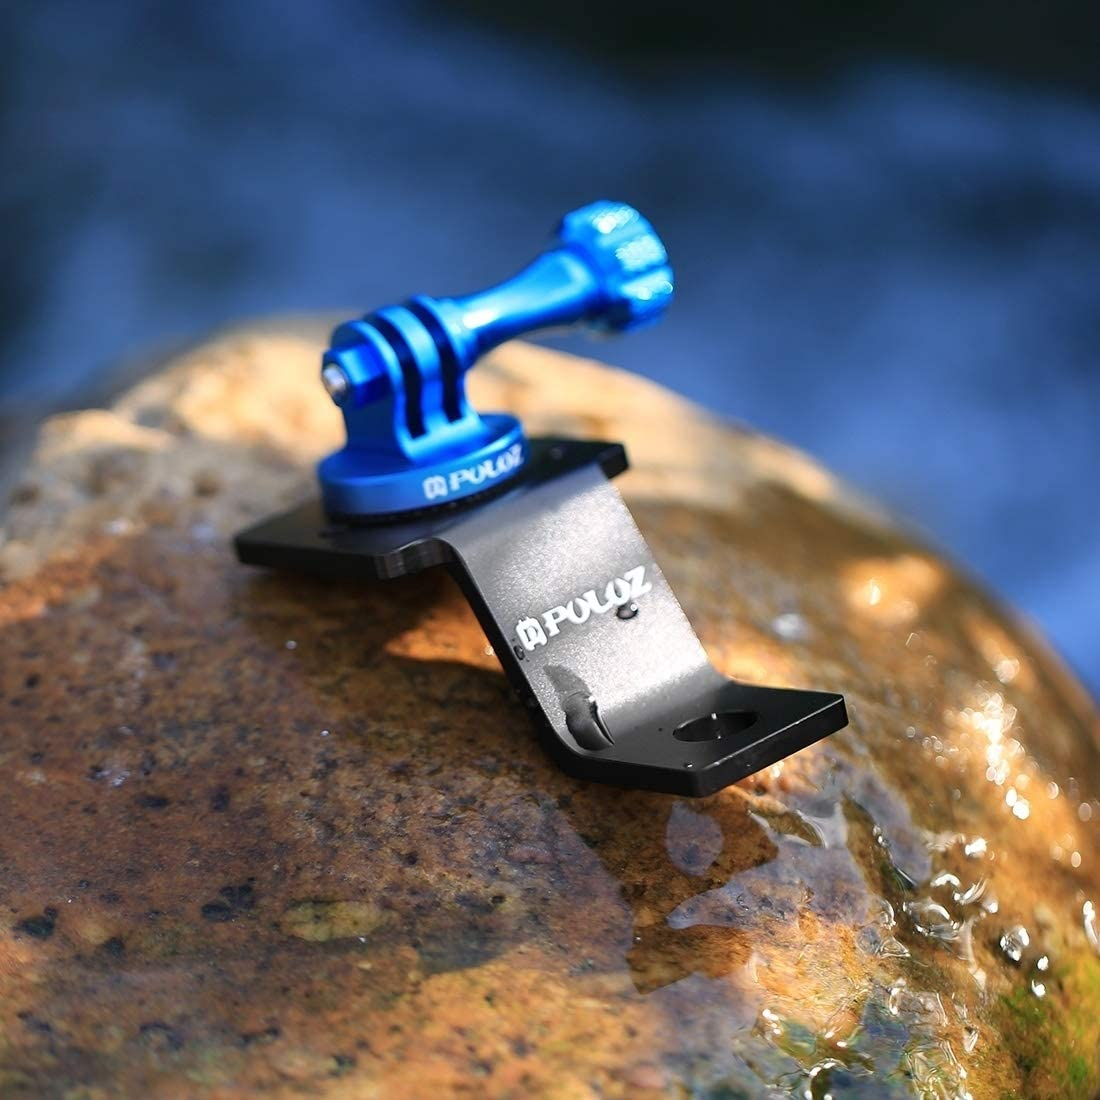 GoPro New Hero //HERO7 //6//5 //5 Session //4 Session //4//3+ //3//2 //1 Xiaoyi and Other Action Cameras Hsifeng Aluminum Alloy Motorcycle Fixed Holder Mount with Tripod Adapter /& Screw for DJI New Action